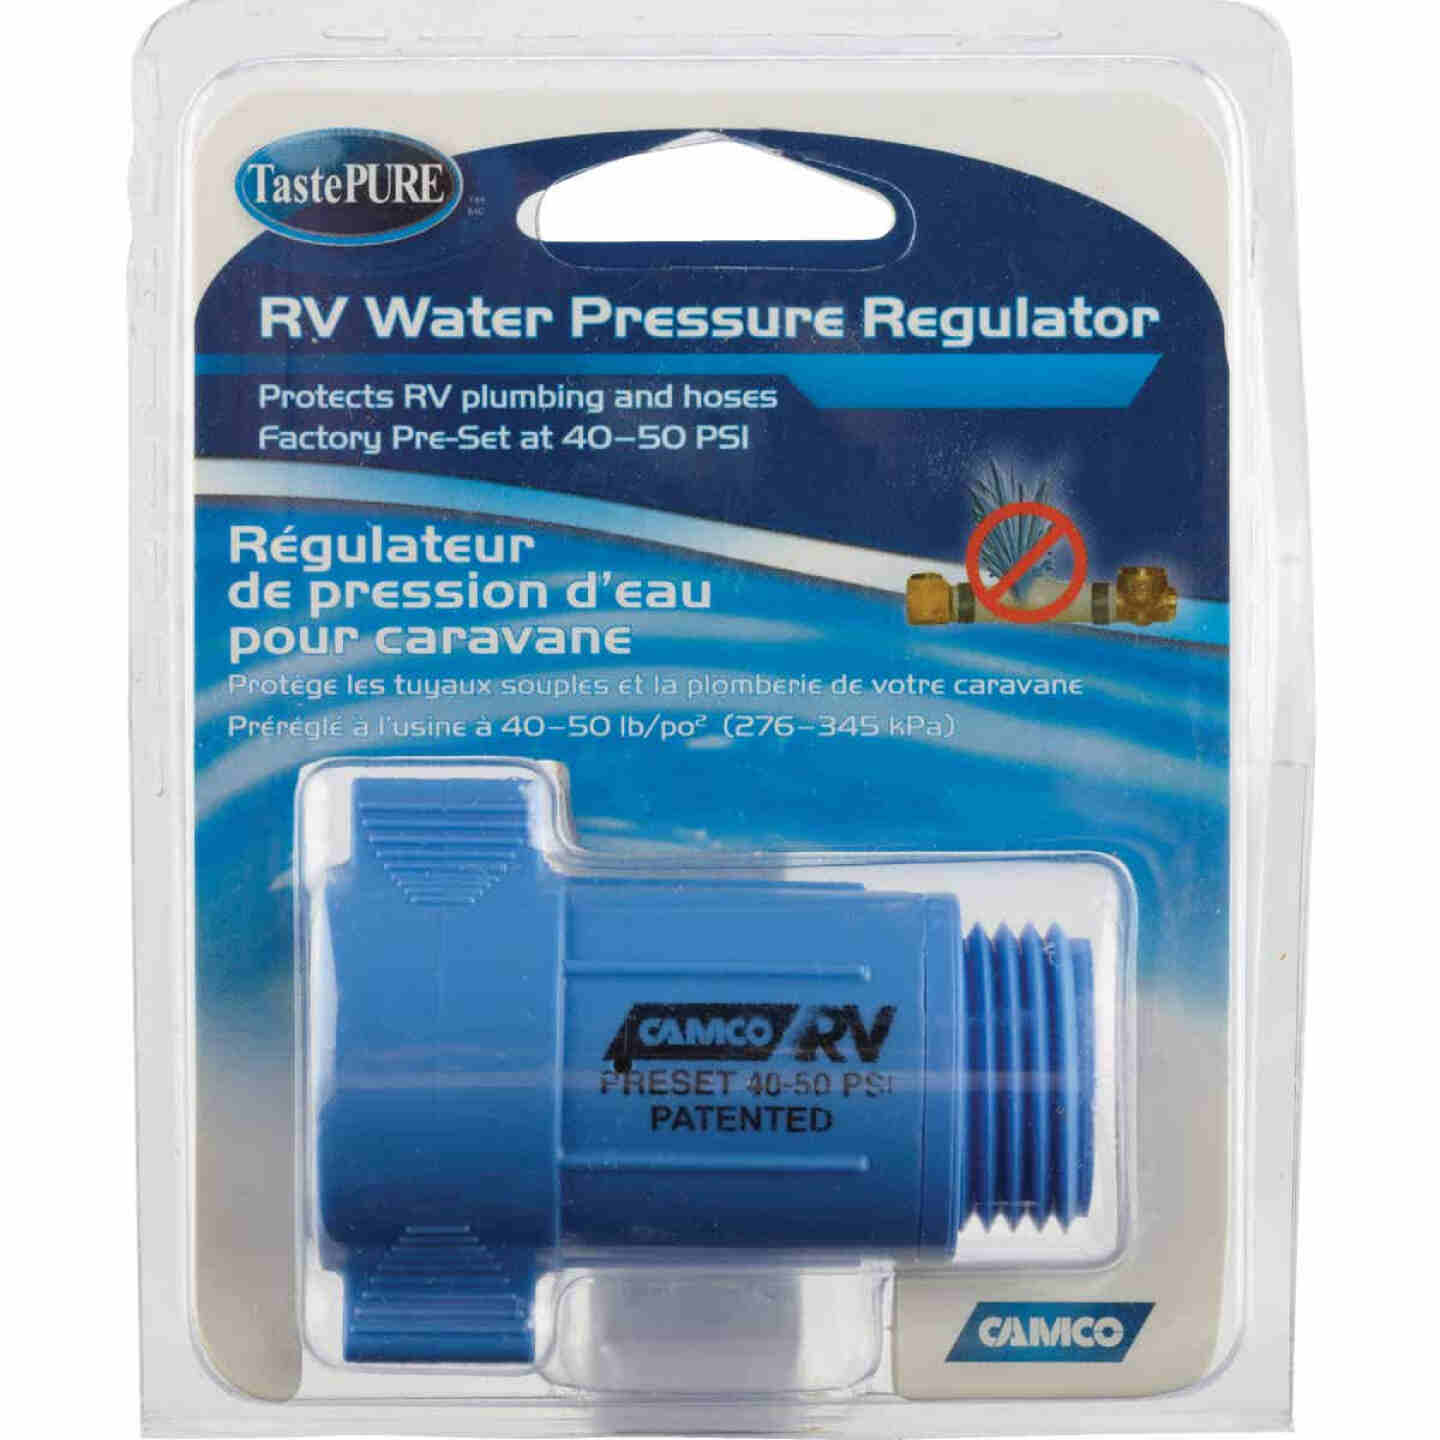 Camco 3/4 In. 40 - 50 psi Durable ABS Plastic RV Water Regulator Image 2